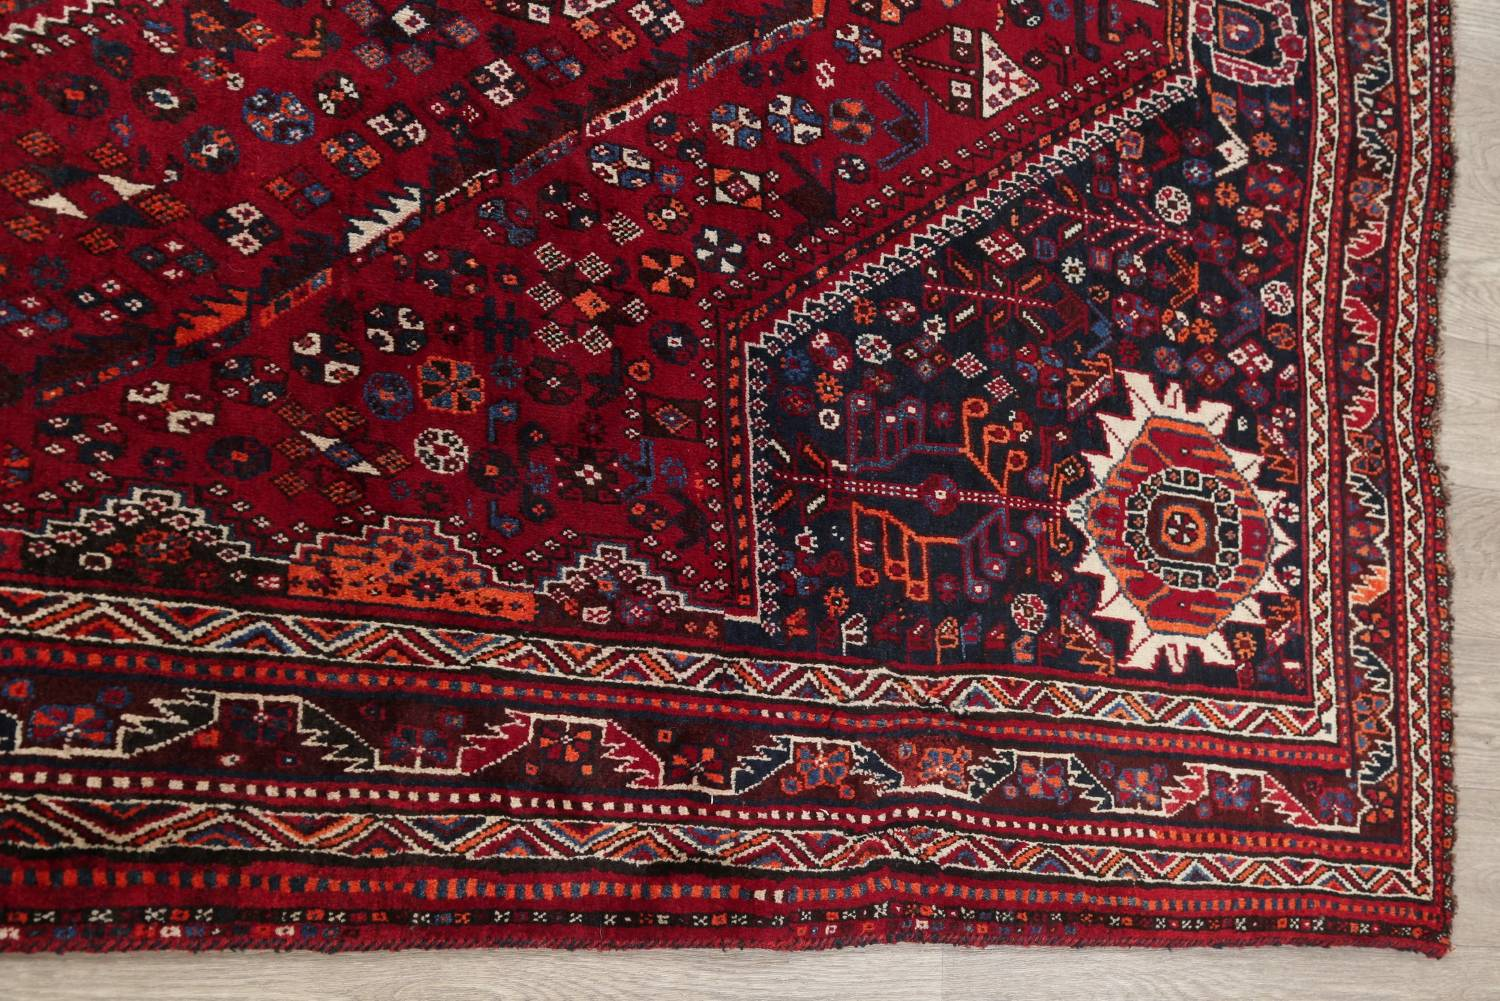 Antique Red Tribal Geometric Qashqai Persian Hand-Knotted 5x8 Wool Area Rug image 13